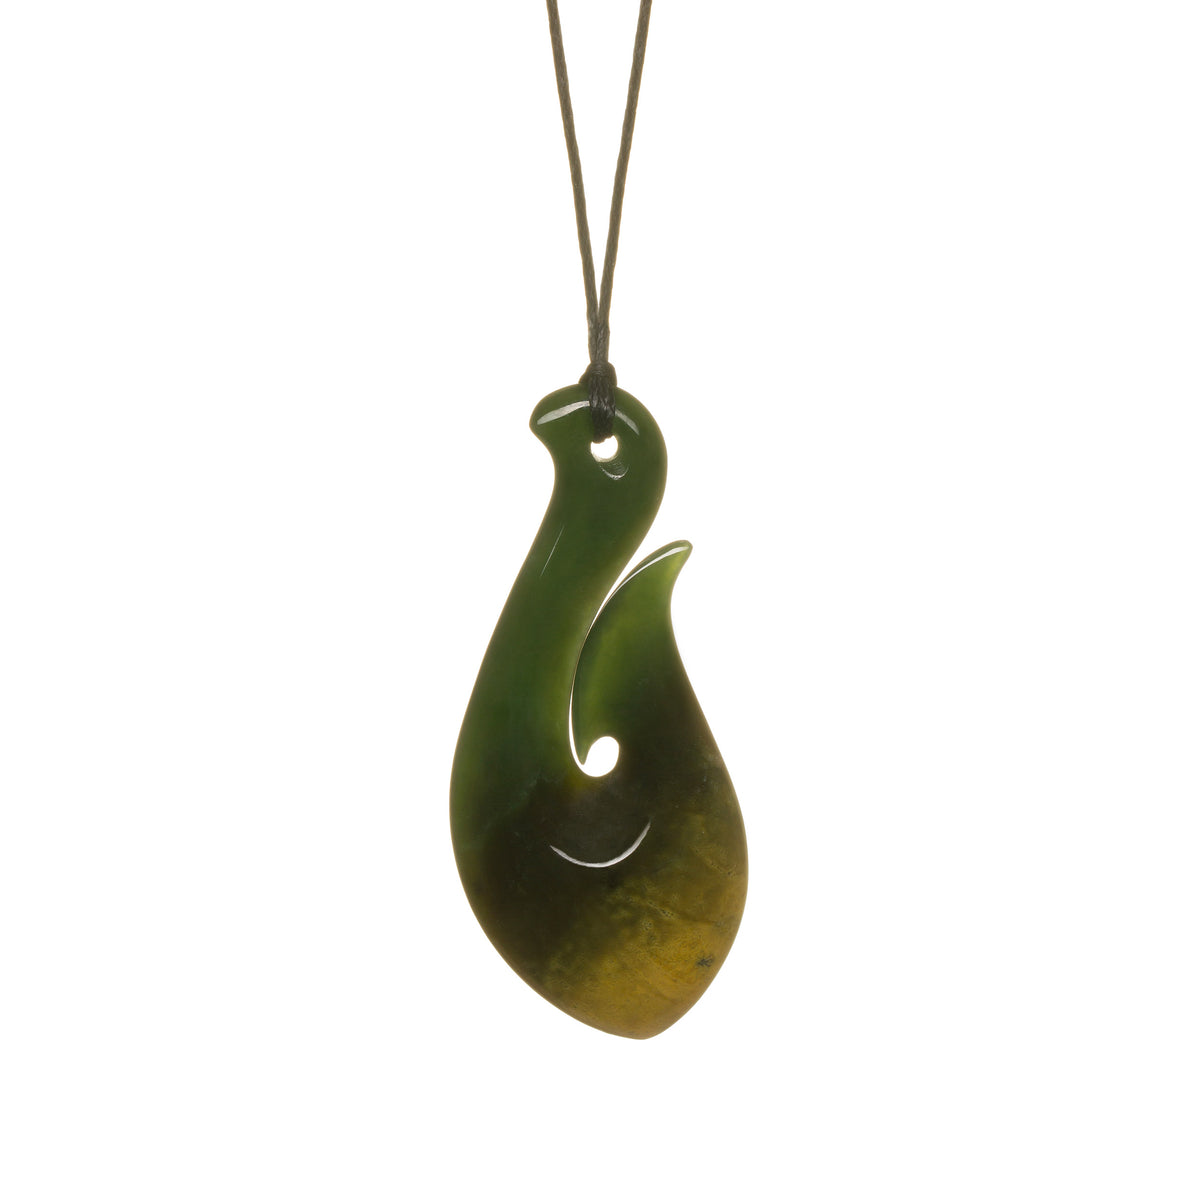 New Zealand Pounamu // LU-HOOKC150-1 / 55mm x 25mm